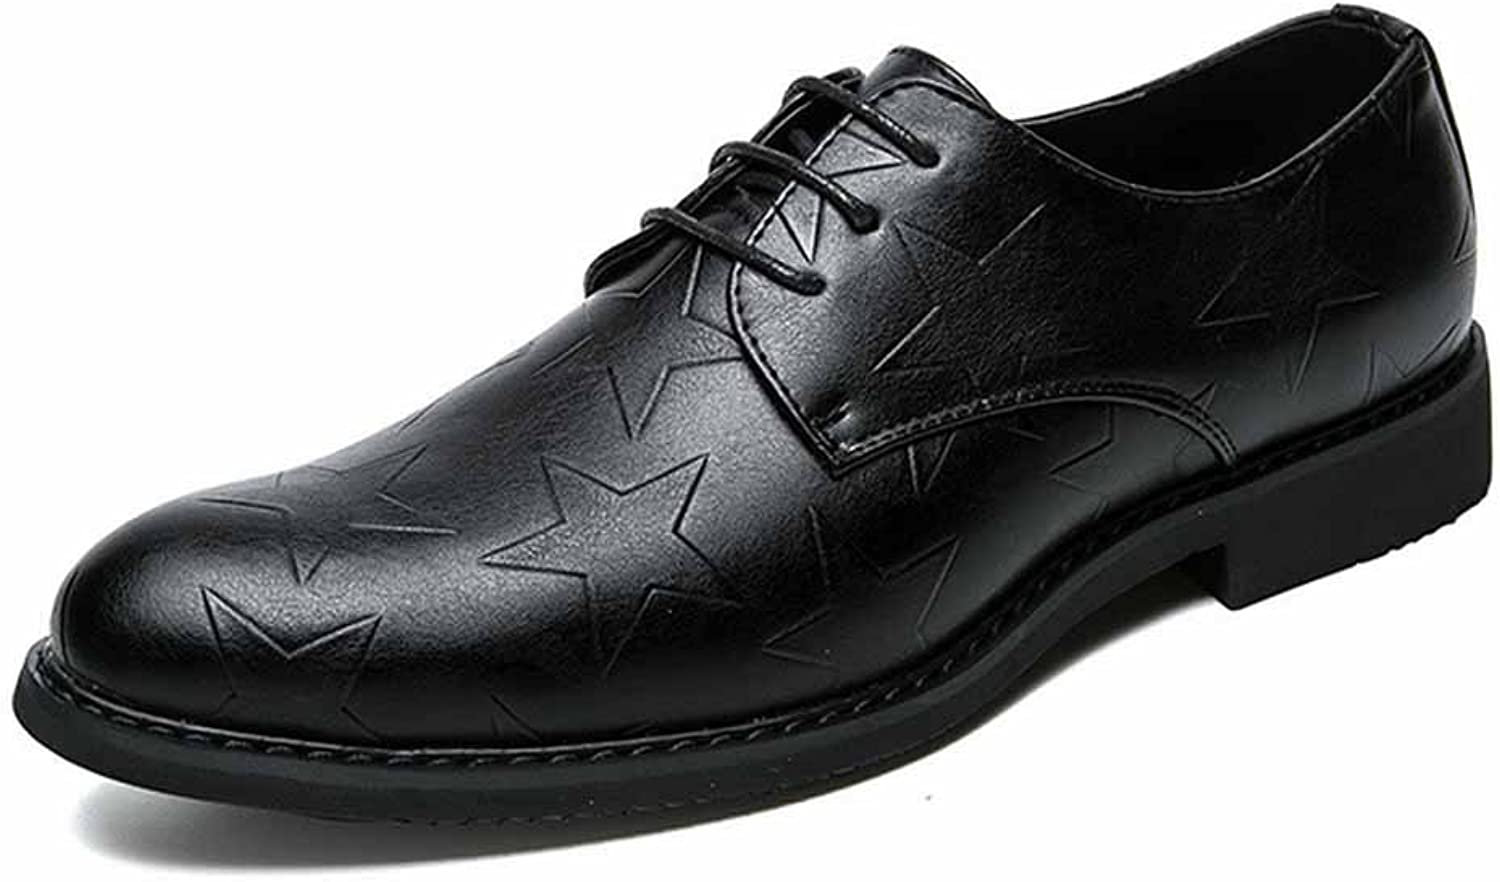 GLSHI Men Casual Derby Business Dress shoes New Four Seasons shoes Simple Leather shoes